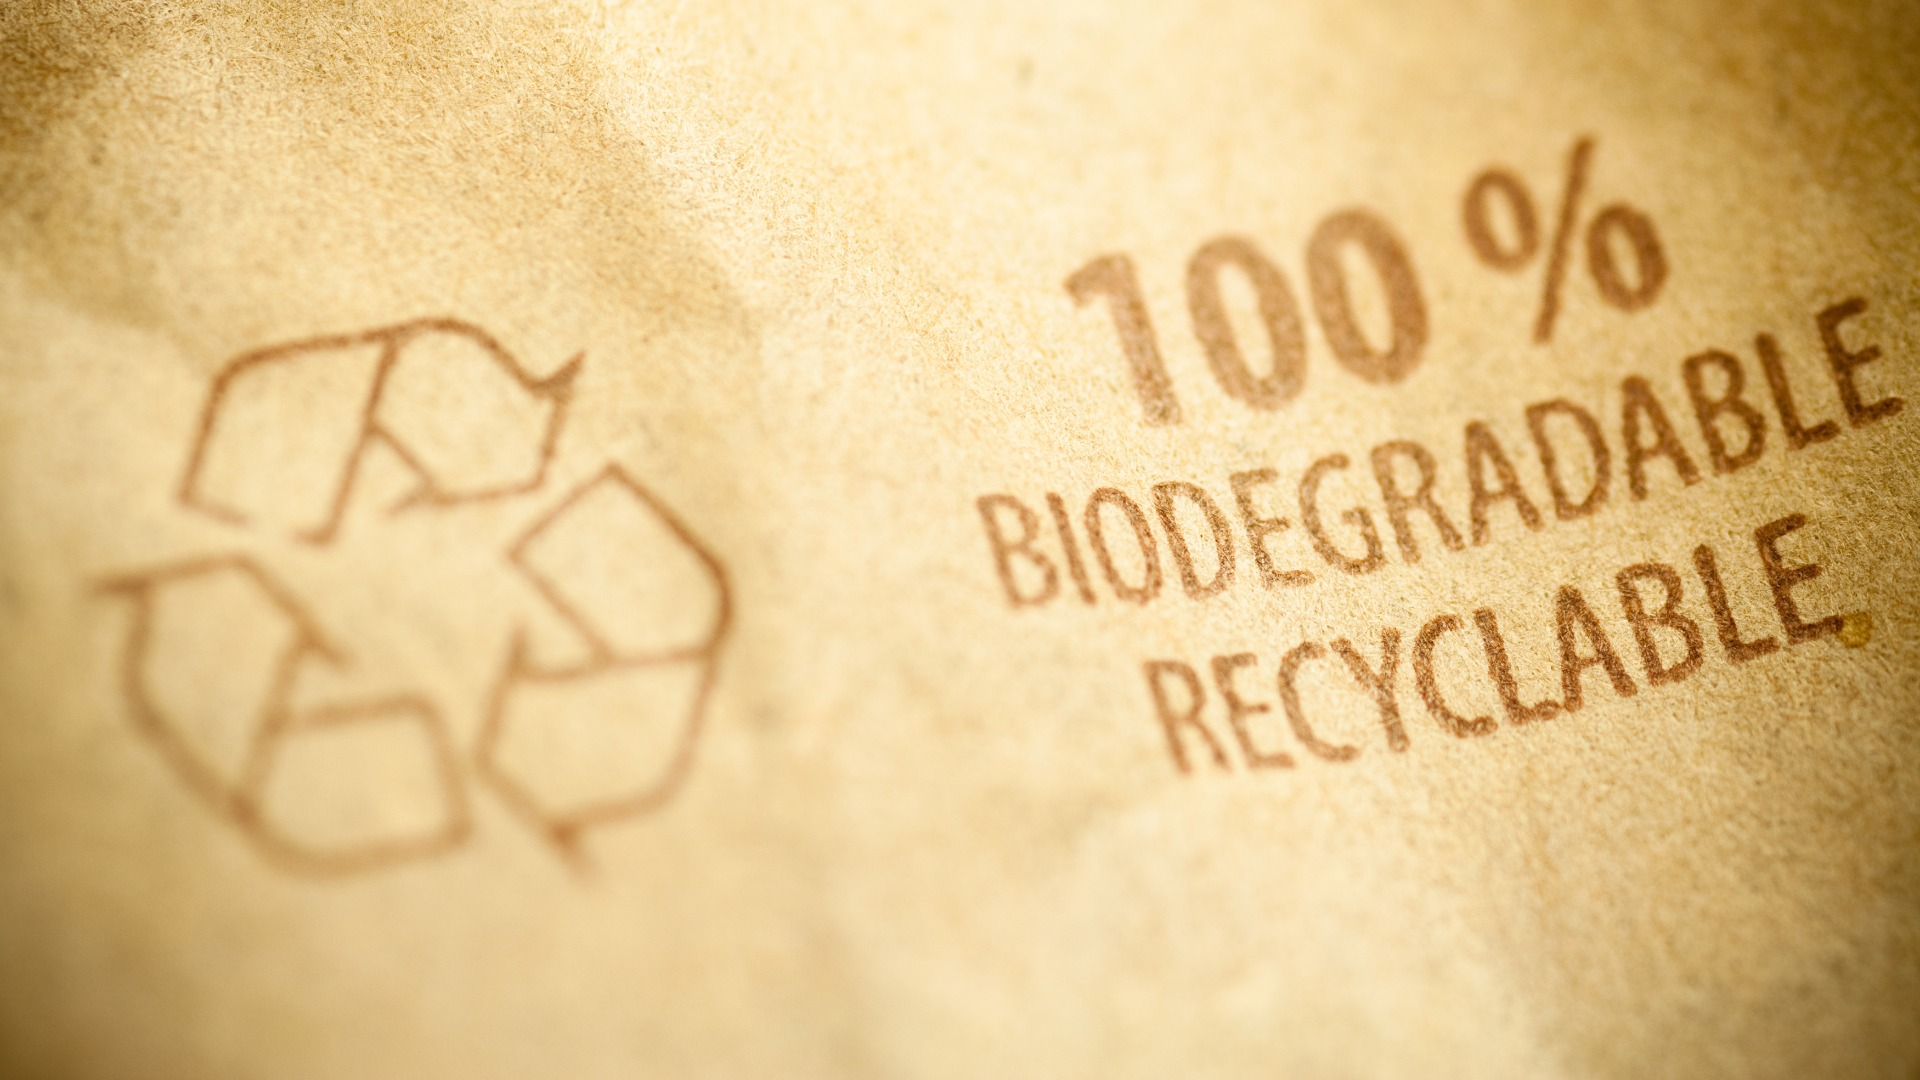 Bio-based packaging needs rigorous testing to avoid a new food safety threat